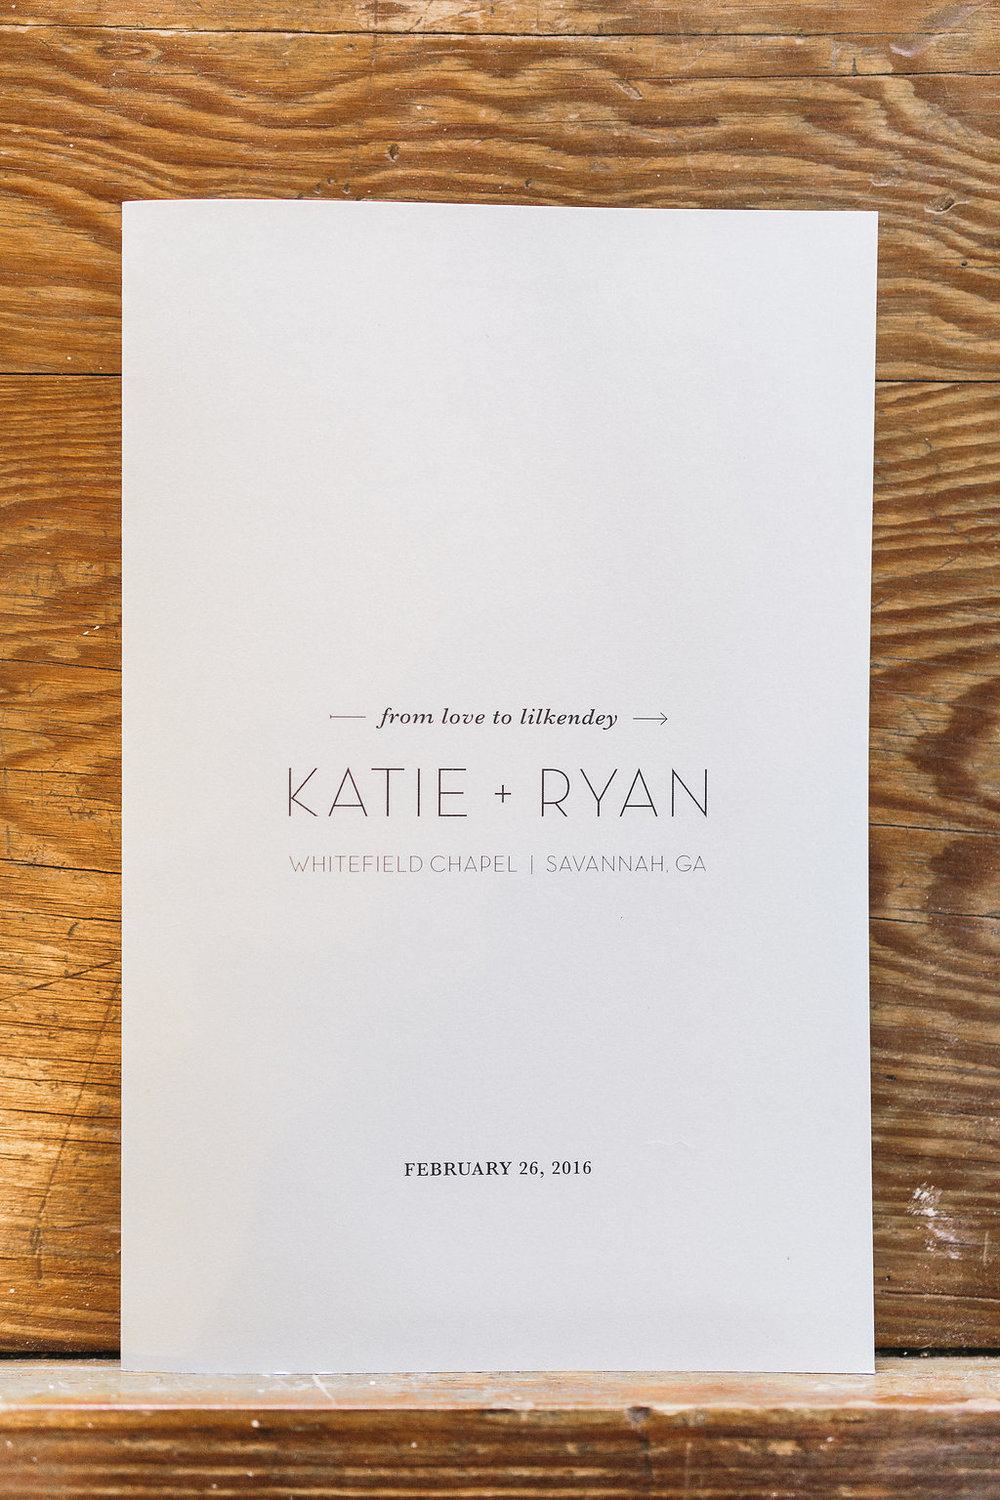 Savannah wedding programs by Mackensey Alexander Photography